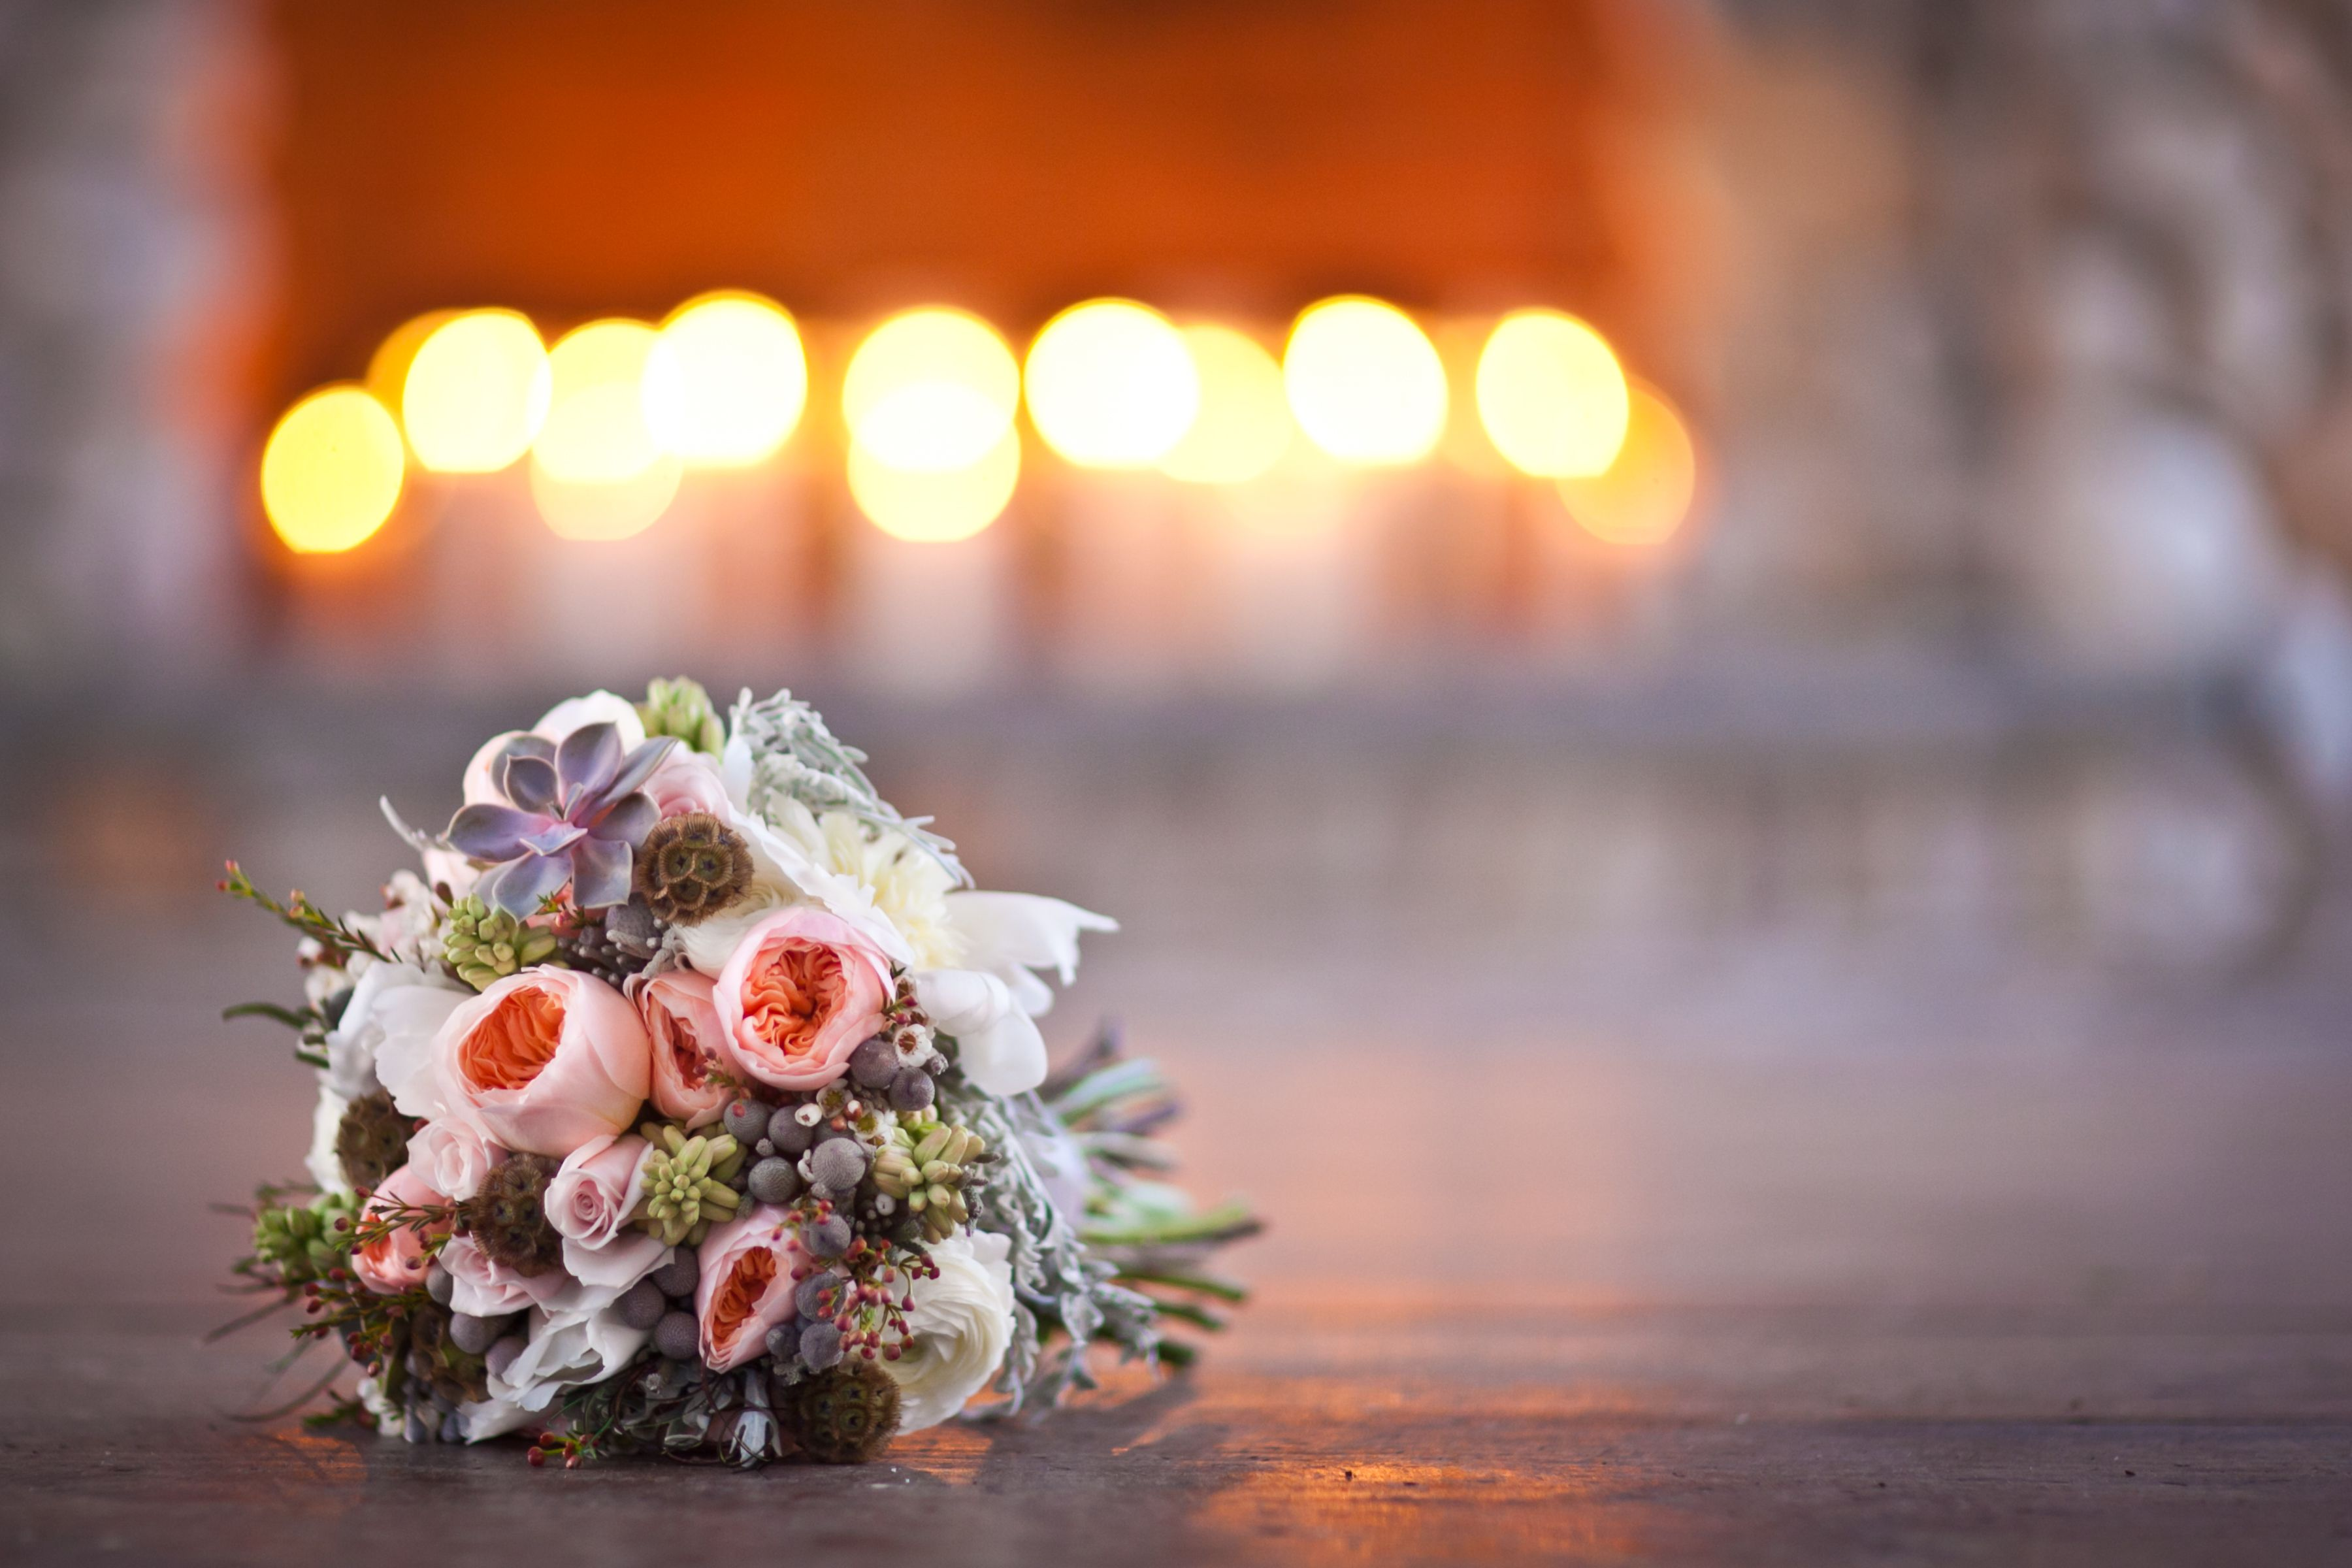 Bridal Bouquets, Wedding Flowers by Pocket Full of Posies, Galloway / Smithville, South NJ 609-652-6666 South Jersey Special Event & Wedding Florist